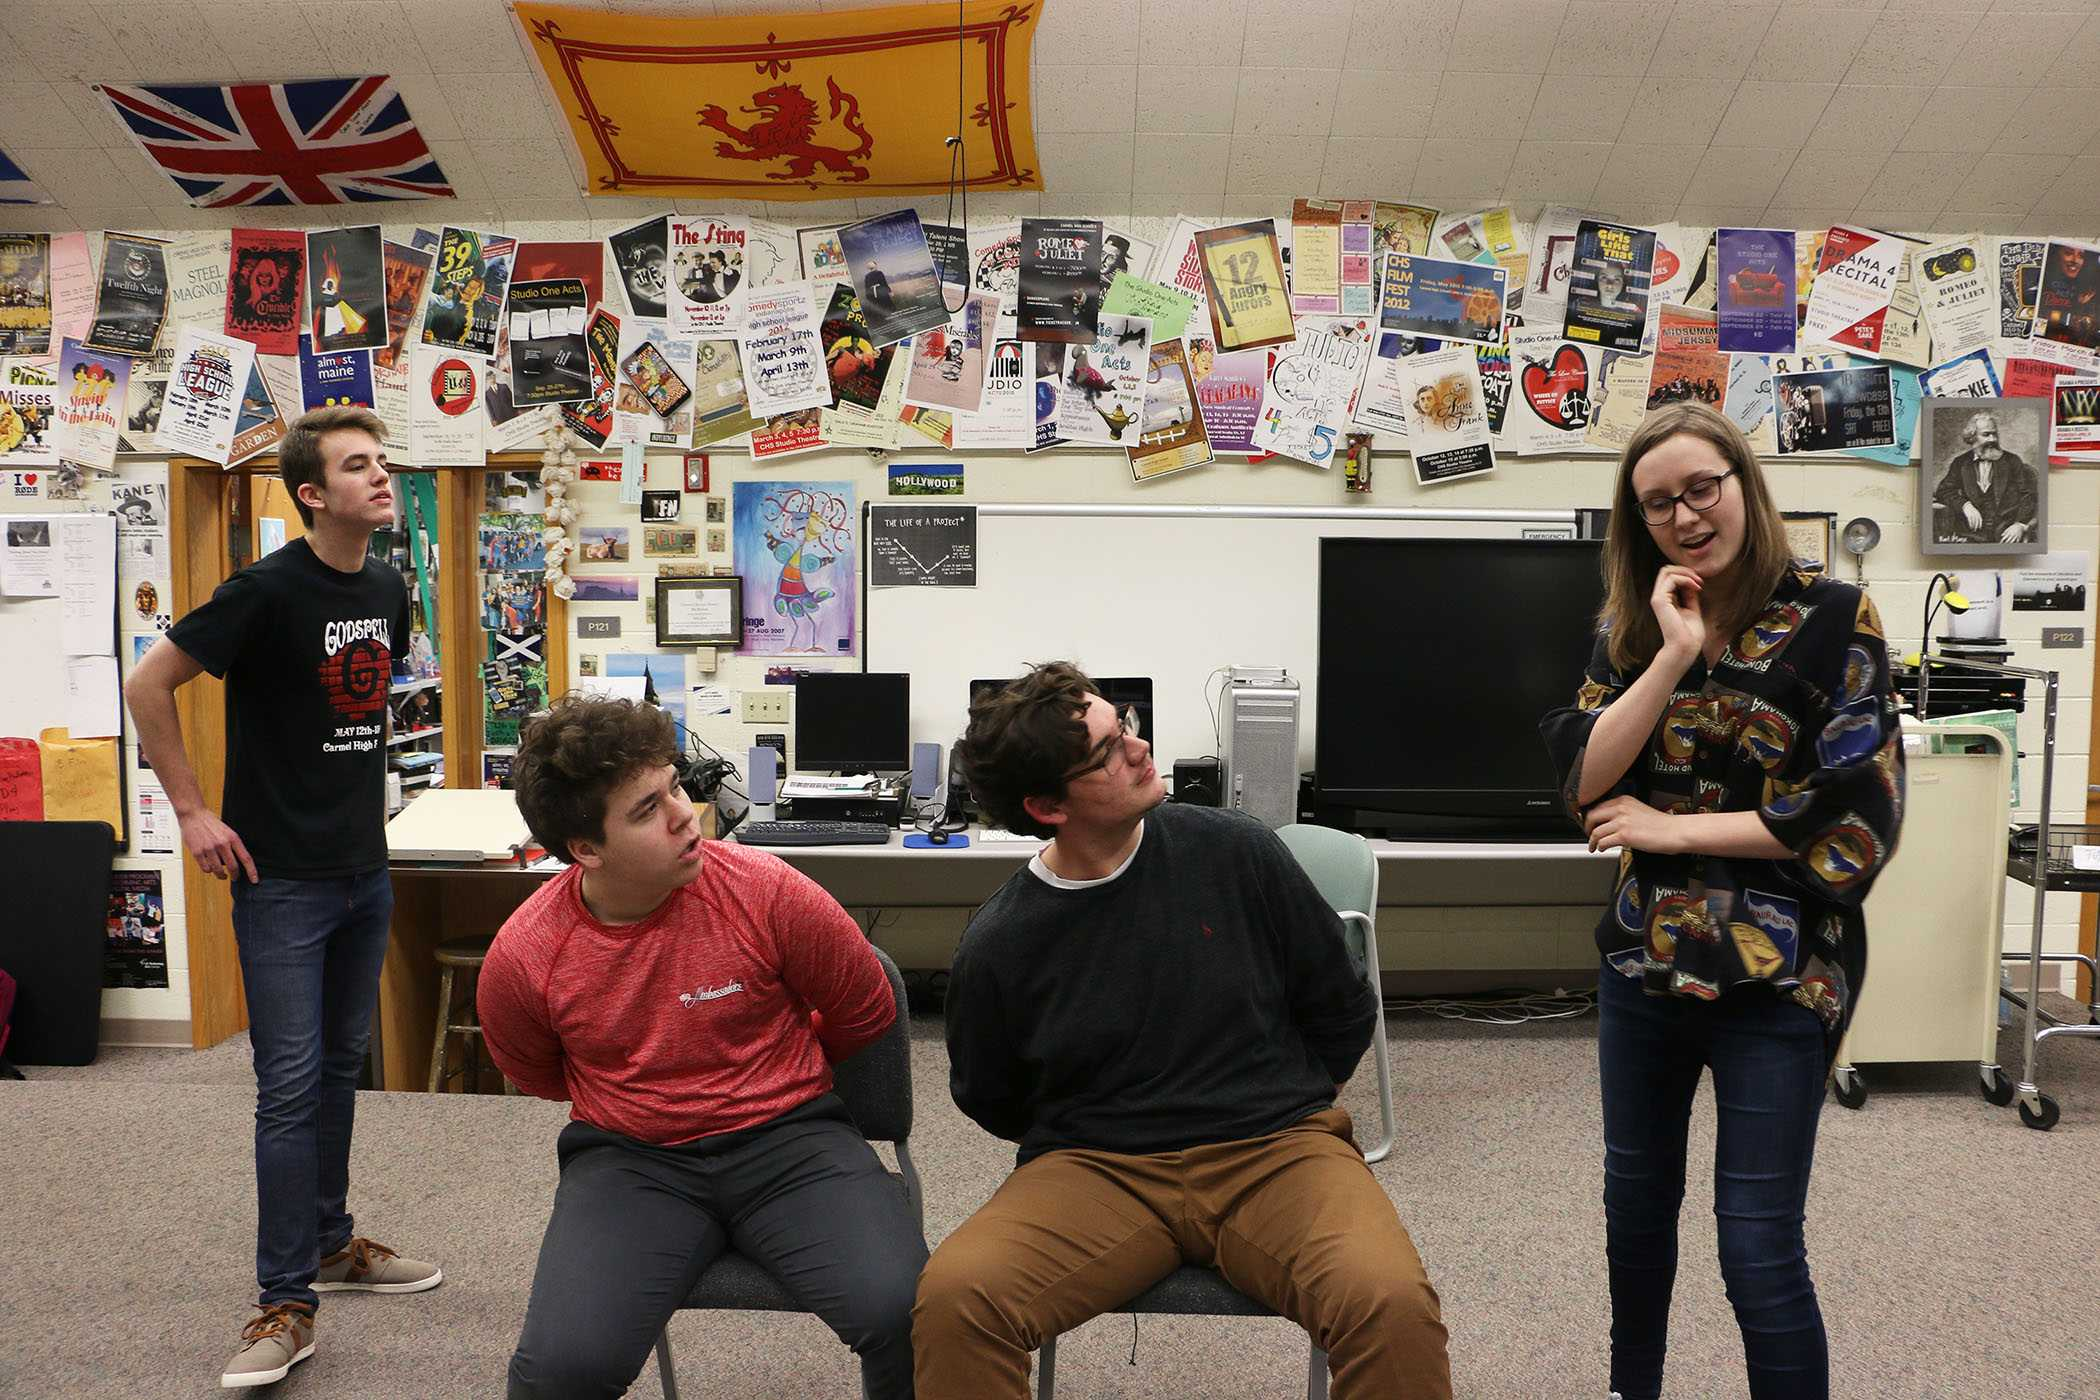 """PATH FINDER: With her fellow ComedySportz participants, junior Sarah Lein  (right) participates in an """"Interrogation"""" activity with junior Eric Bembenek (left) and senior Chuck Burton (center). Lein joined ComedySportz to figure out what path she wants to take."""